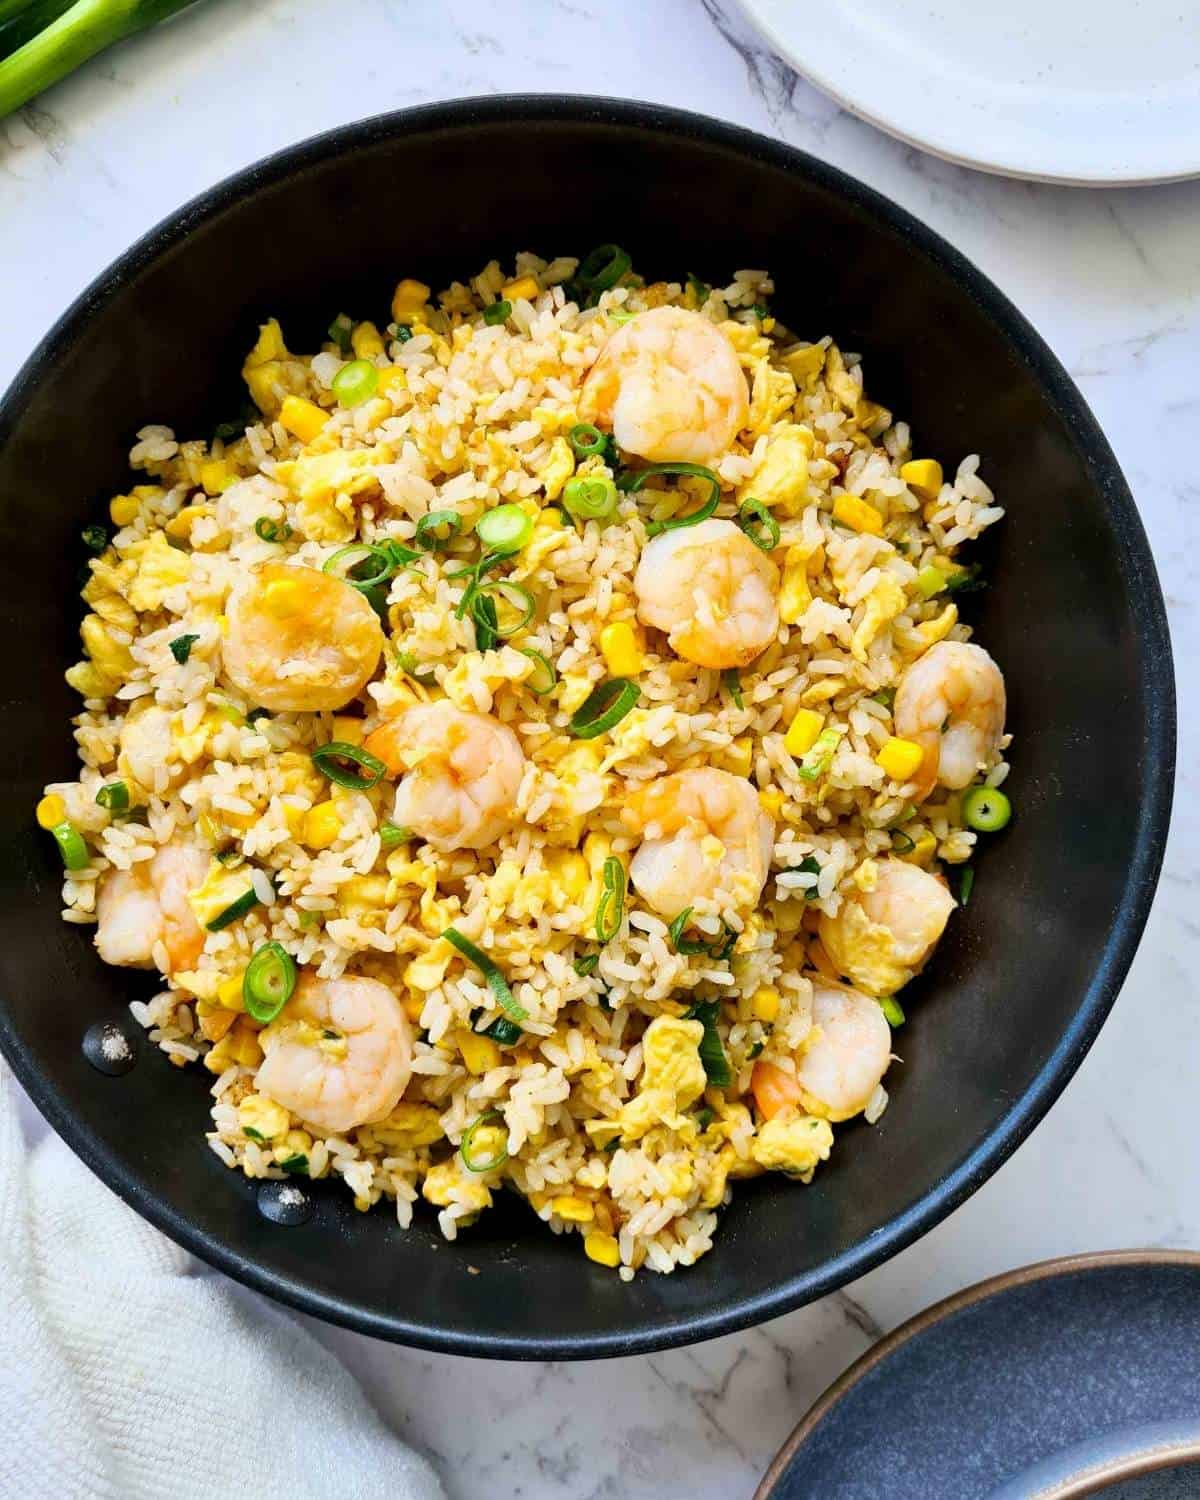 Freshly made fried rice in a black frying pan